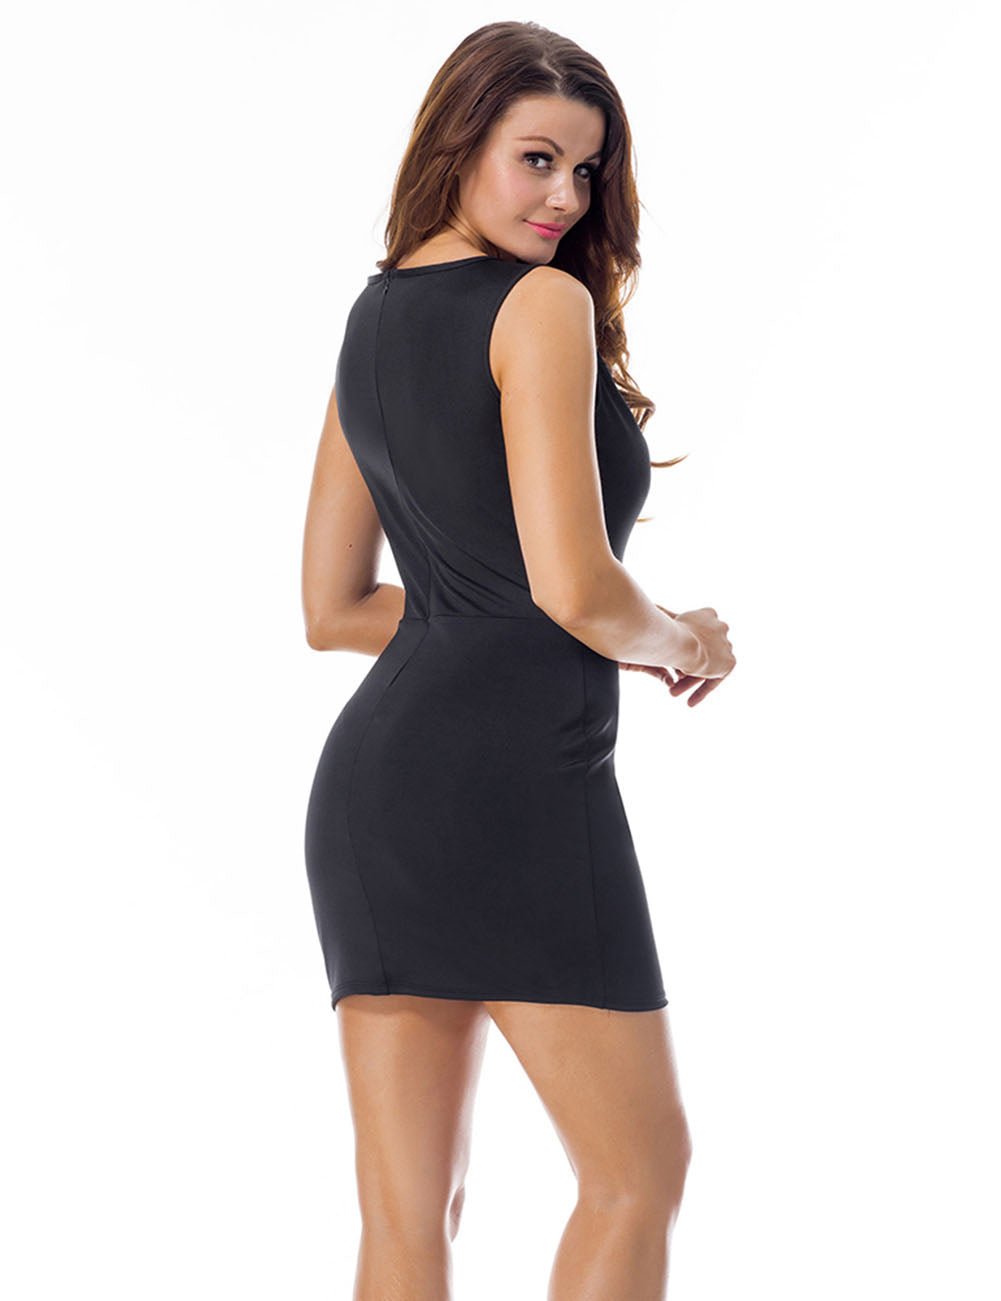 Remarkable Sleeveless Zip Back Mesh Panel Bodycon Dress For Strolling